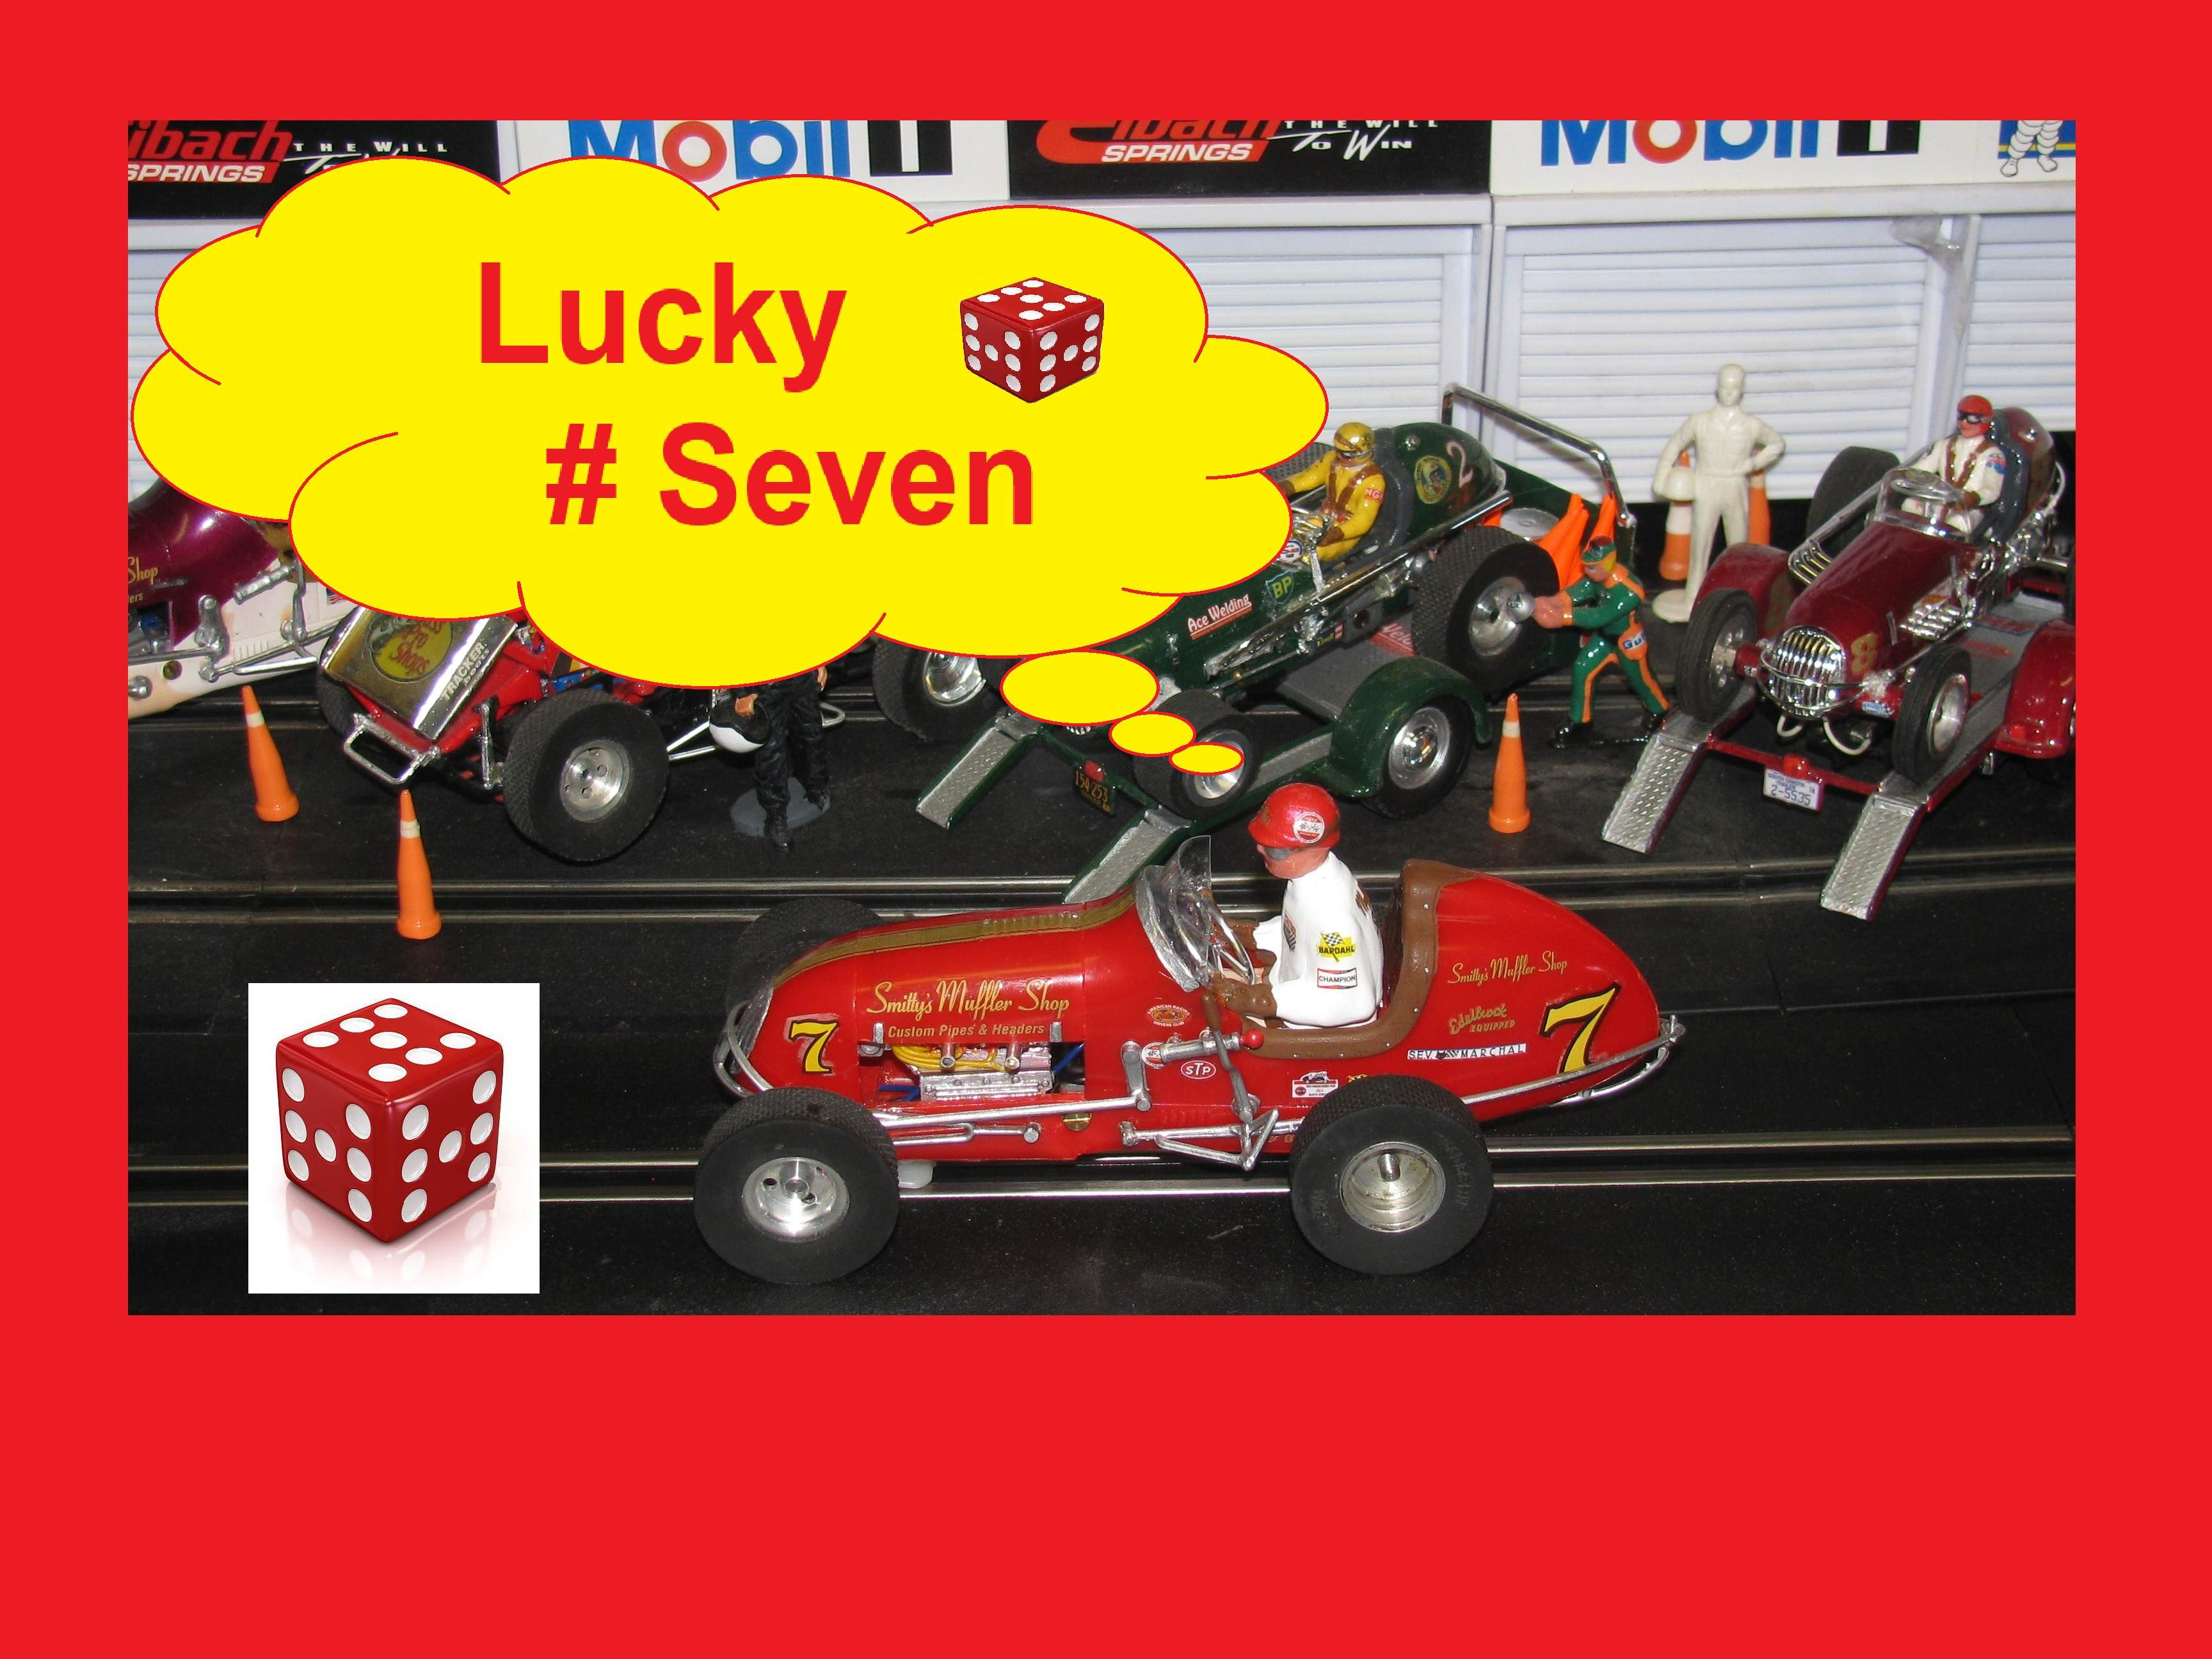 "* SOLD * Vintage Monogram Midget Racer Slot Car ""Lucky # Seven"" Smitty's Muffler Shop Car 7"